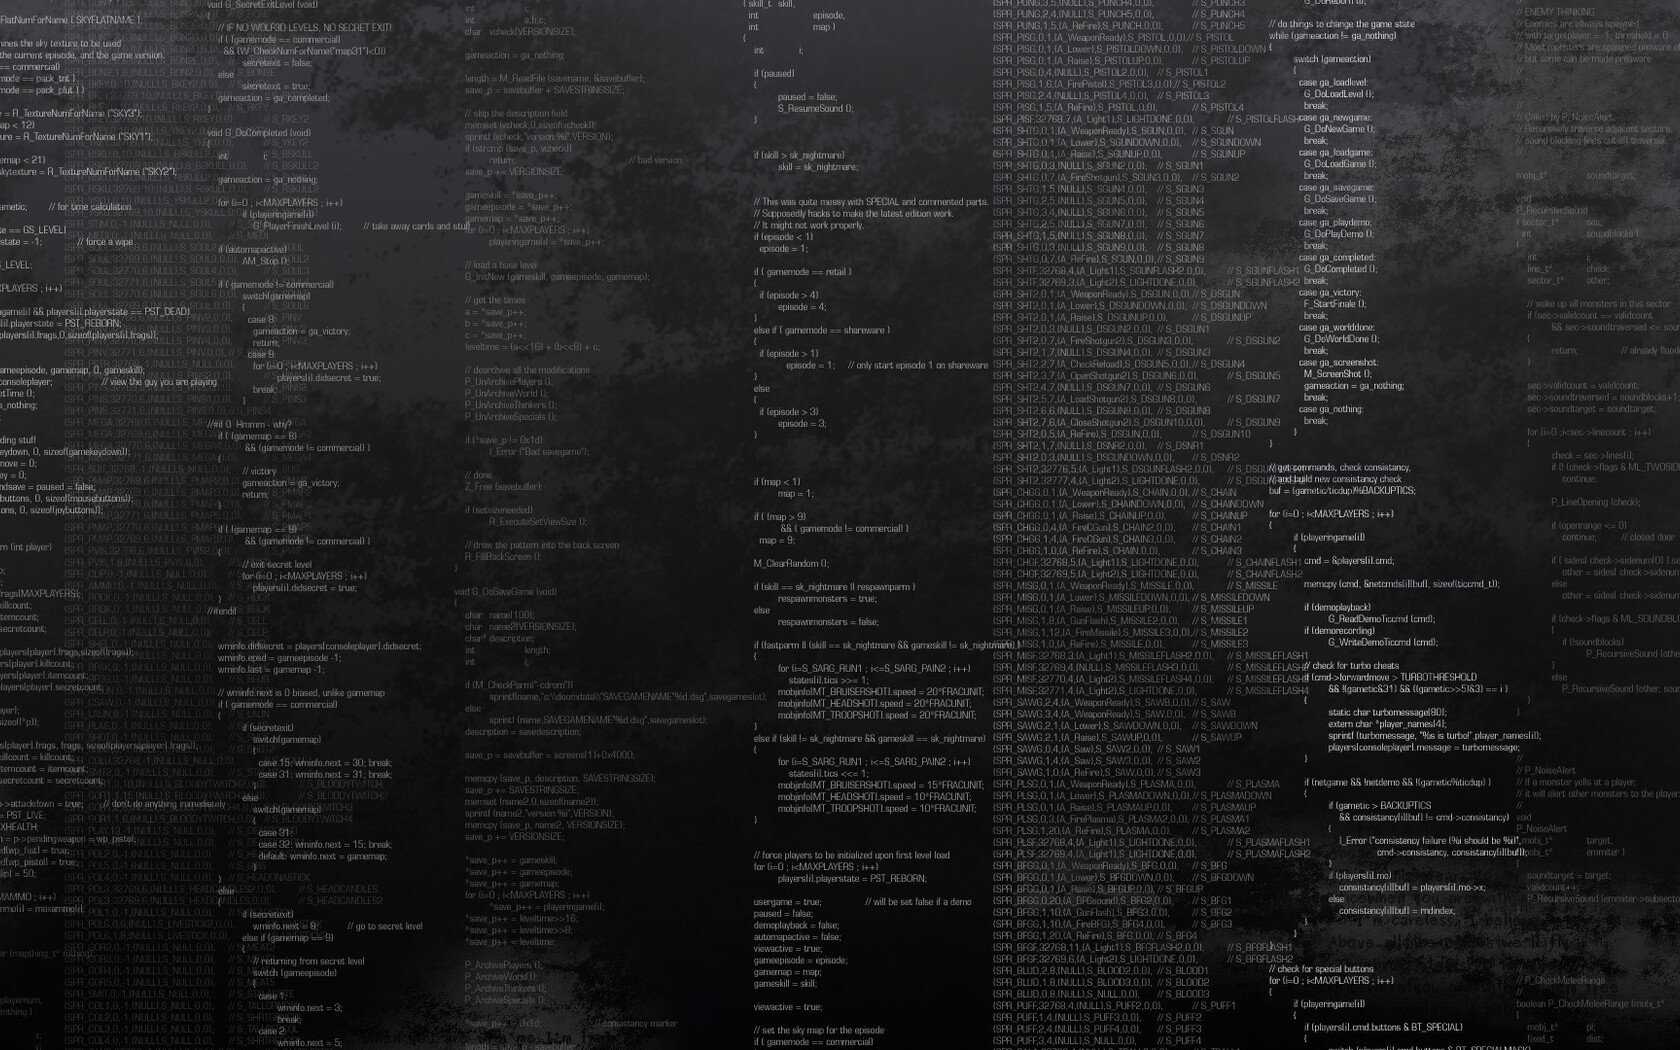 1680x1050 Code Hacker 1680x1050 Resolution Hd 4k Wallpapers Images